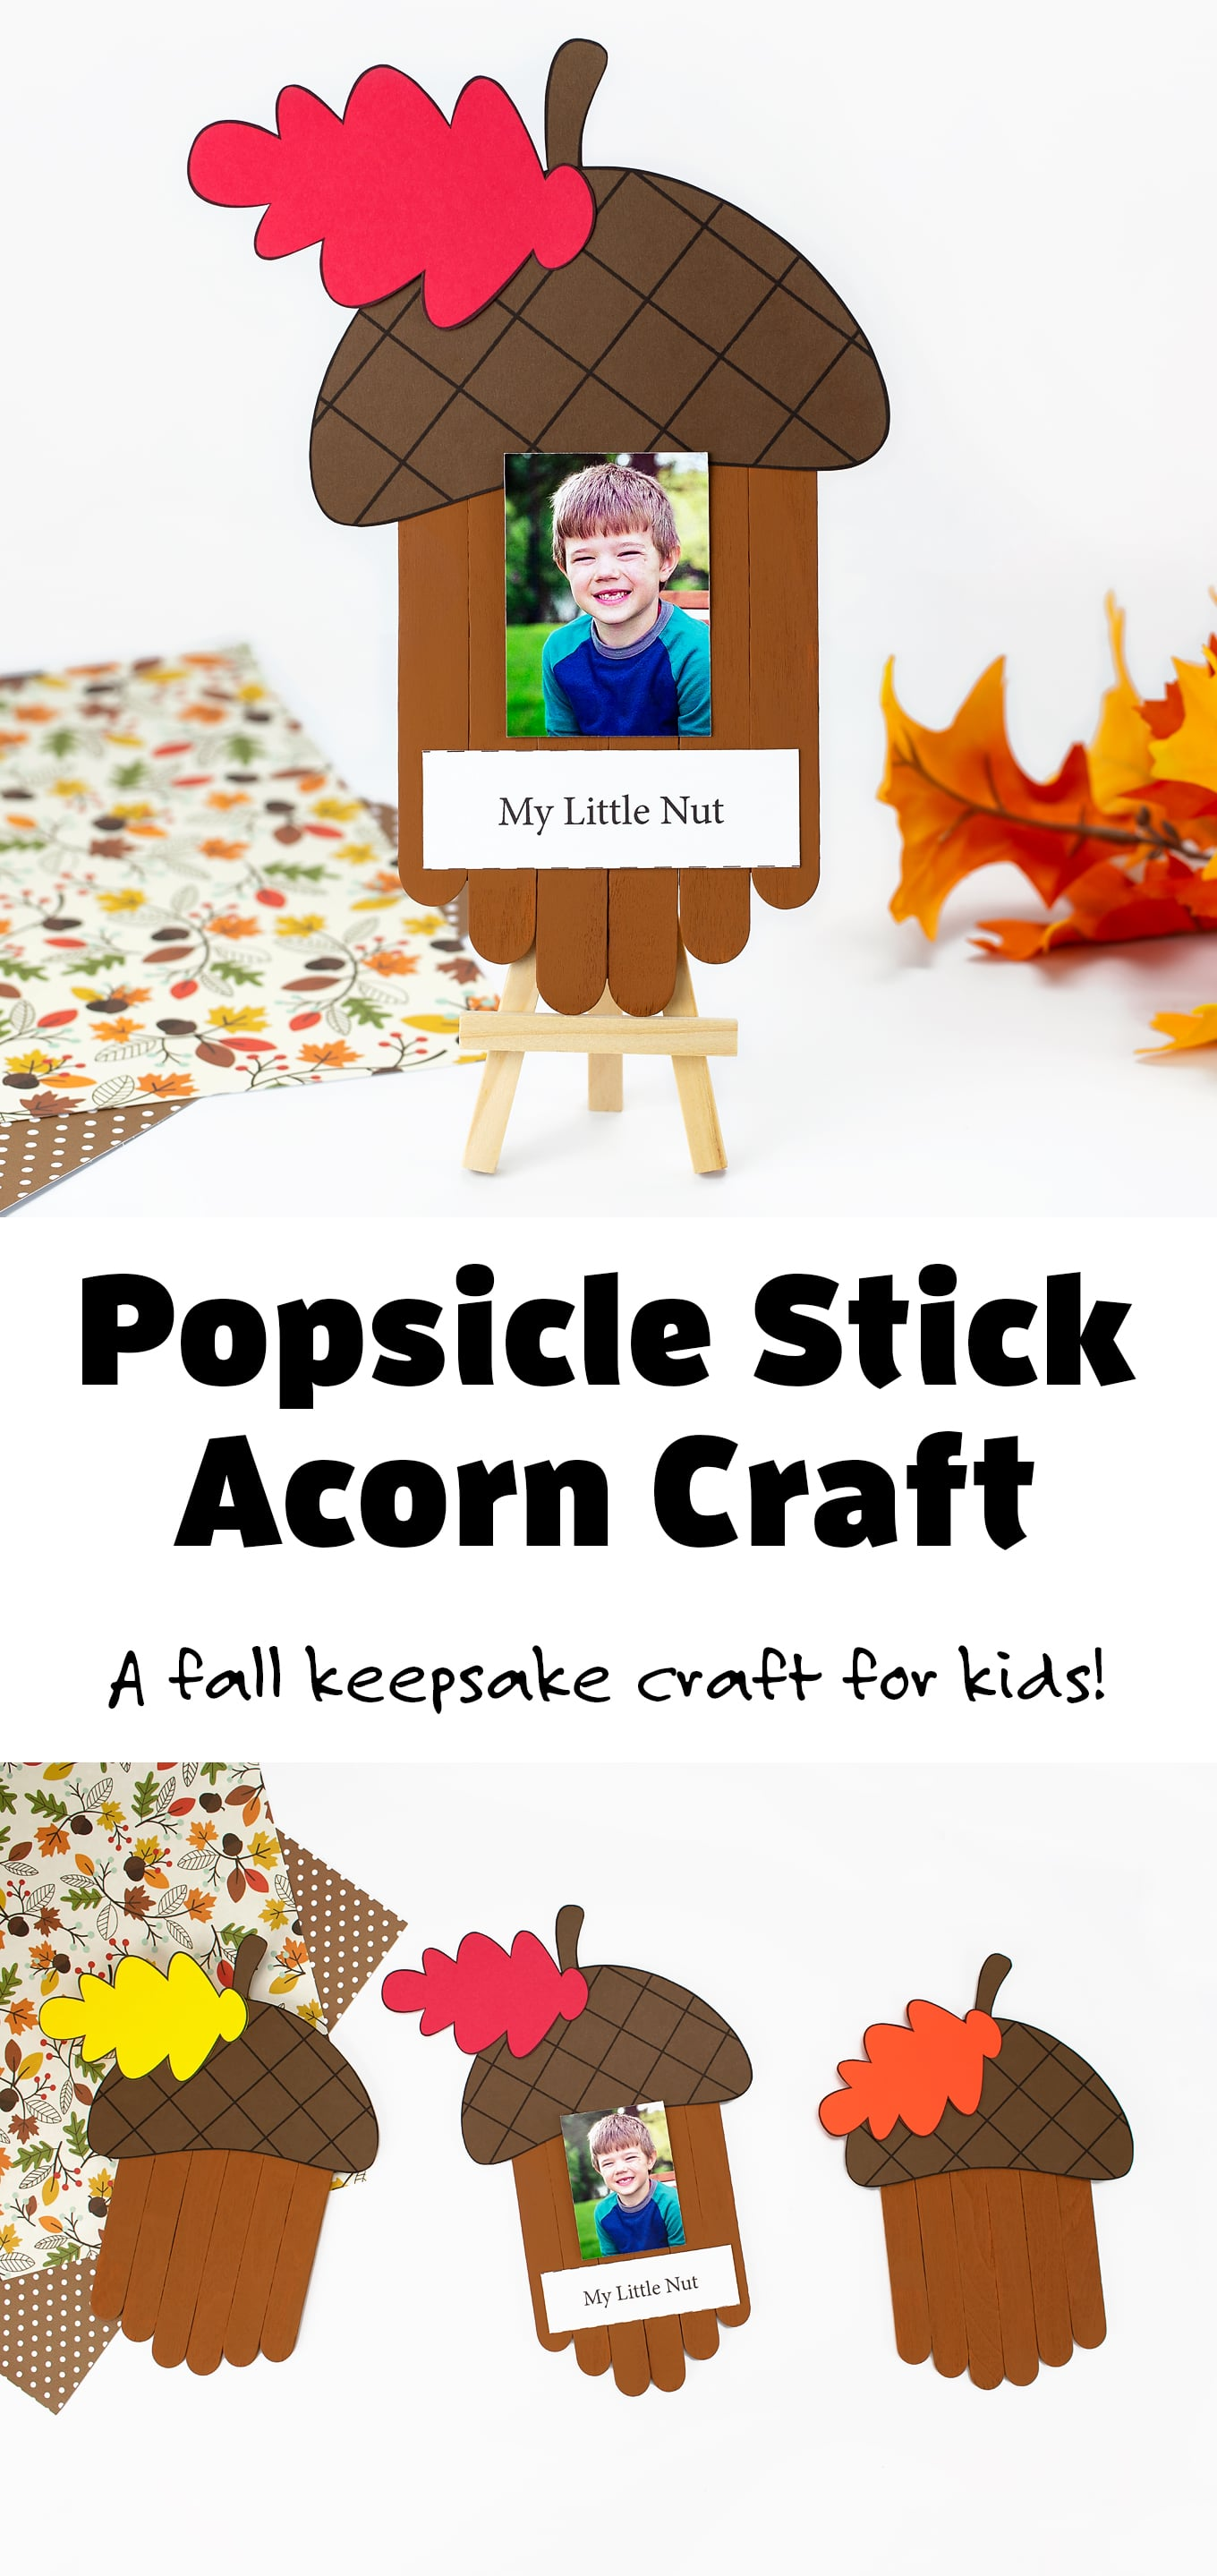 """This """"My Little Nut"""" Popsicle Stick Acorn Craft is the cutest keepsake craft for fall! Includes a free printable template for home or school. #firefliesandmudpies #acorncraft #preschool #fall #september #preschoolcraft via @firefliesandmudpies"""